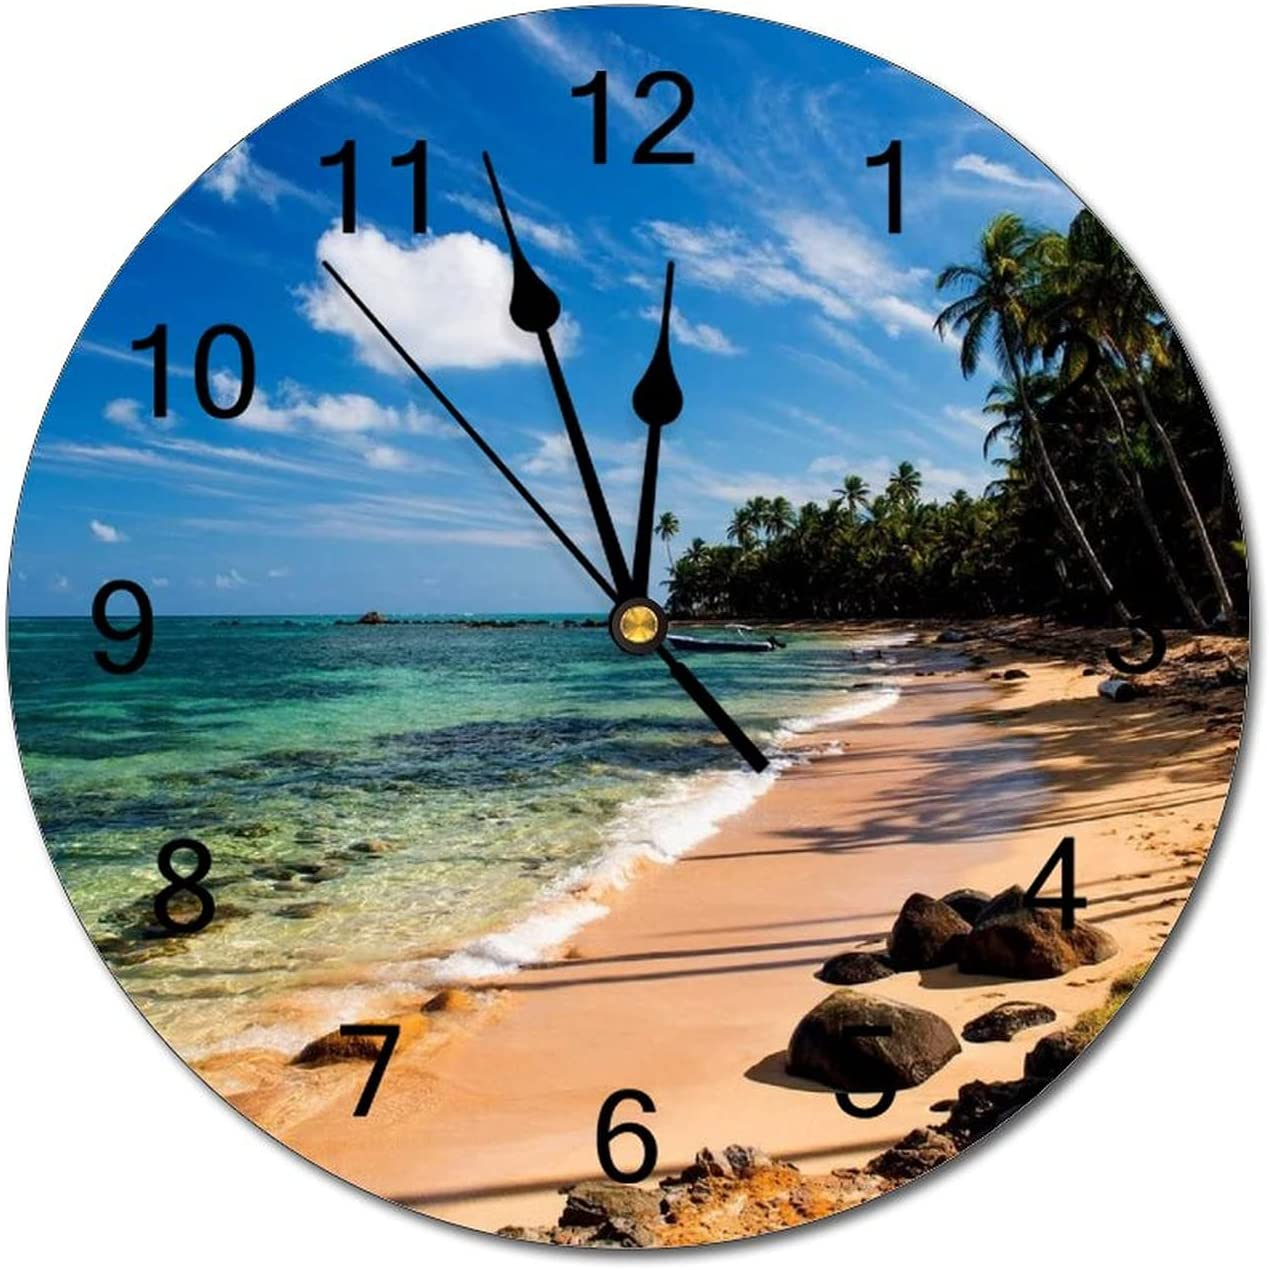 Choice Tropical Beach Sea Palm Trees Stones Non Moss Operated T New Free Shipping Battery